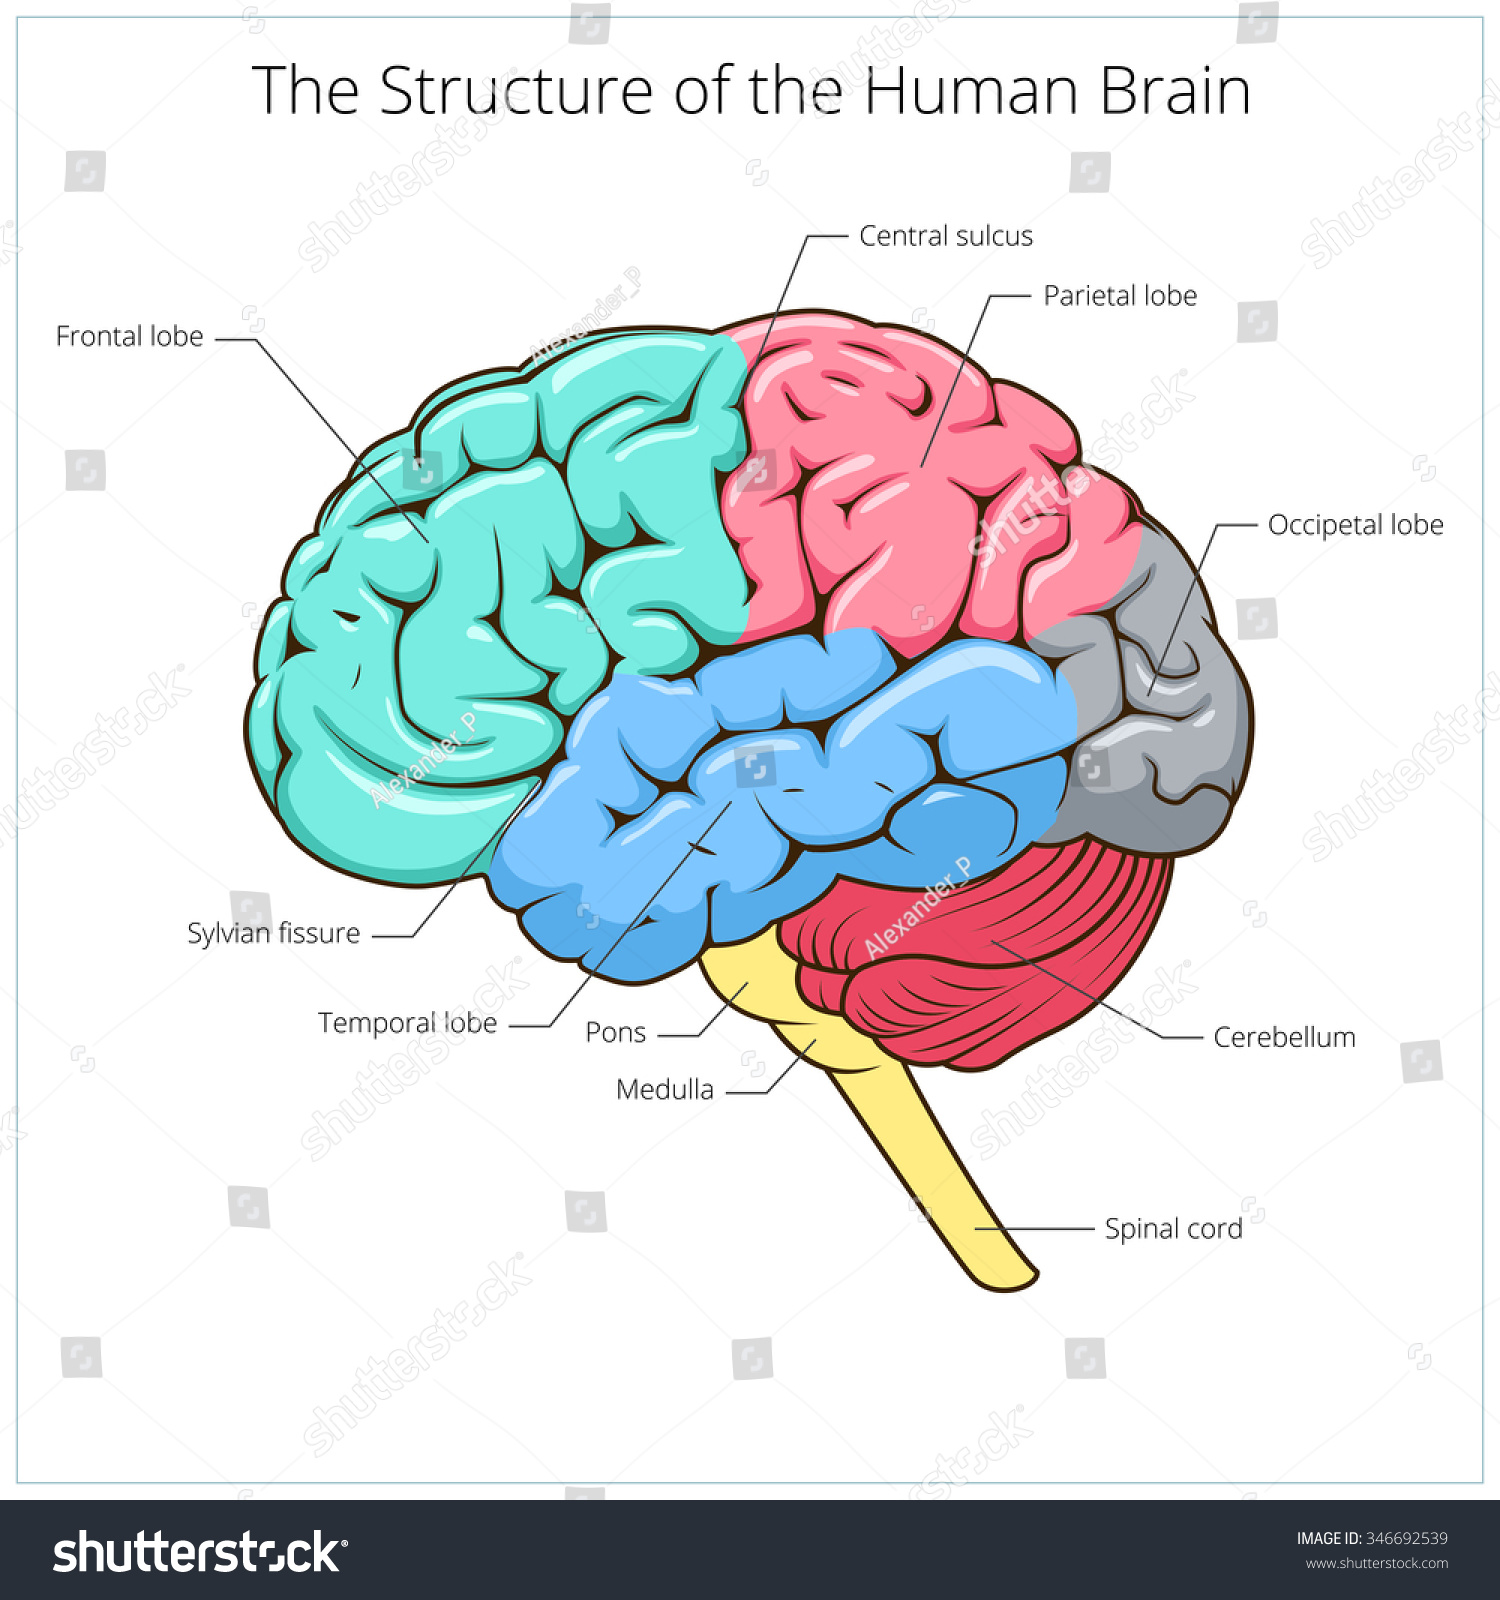 Structure of human brain schematic vector illustration Medical science educational illustration